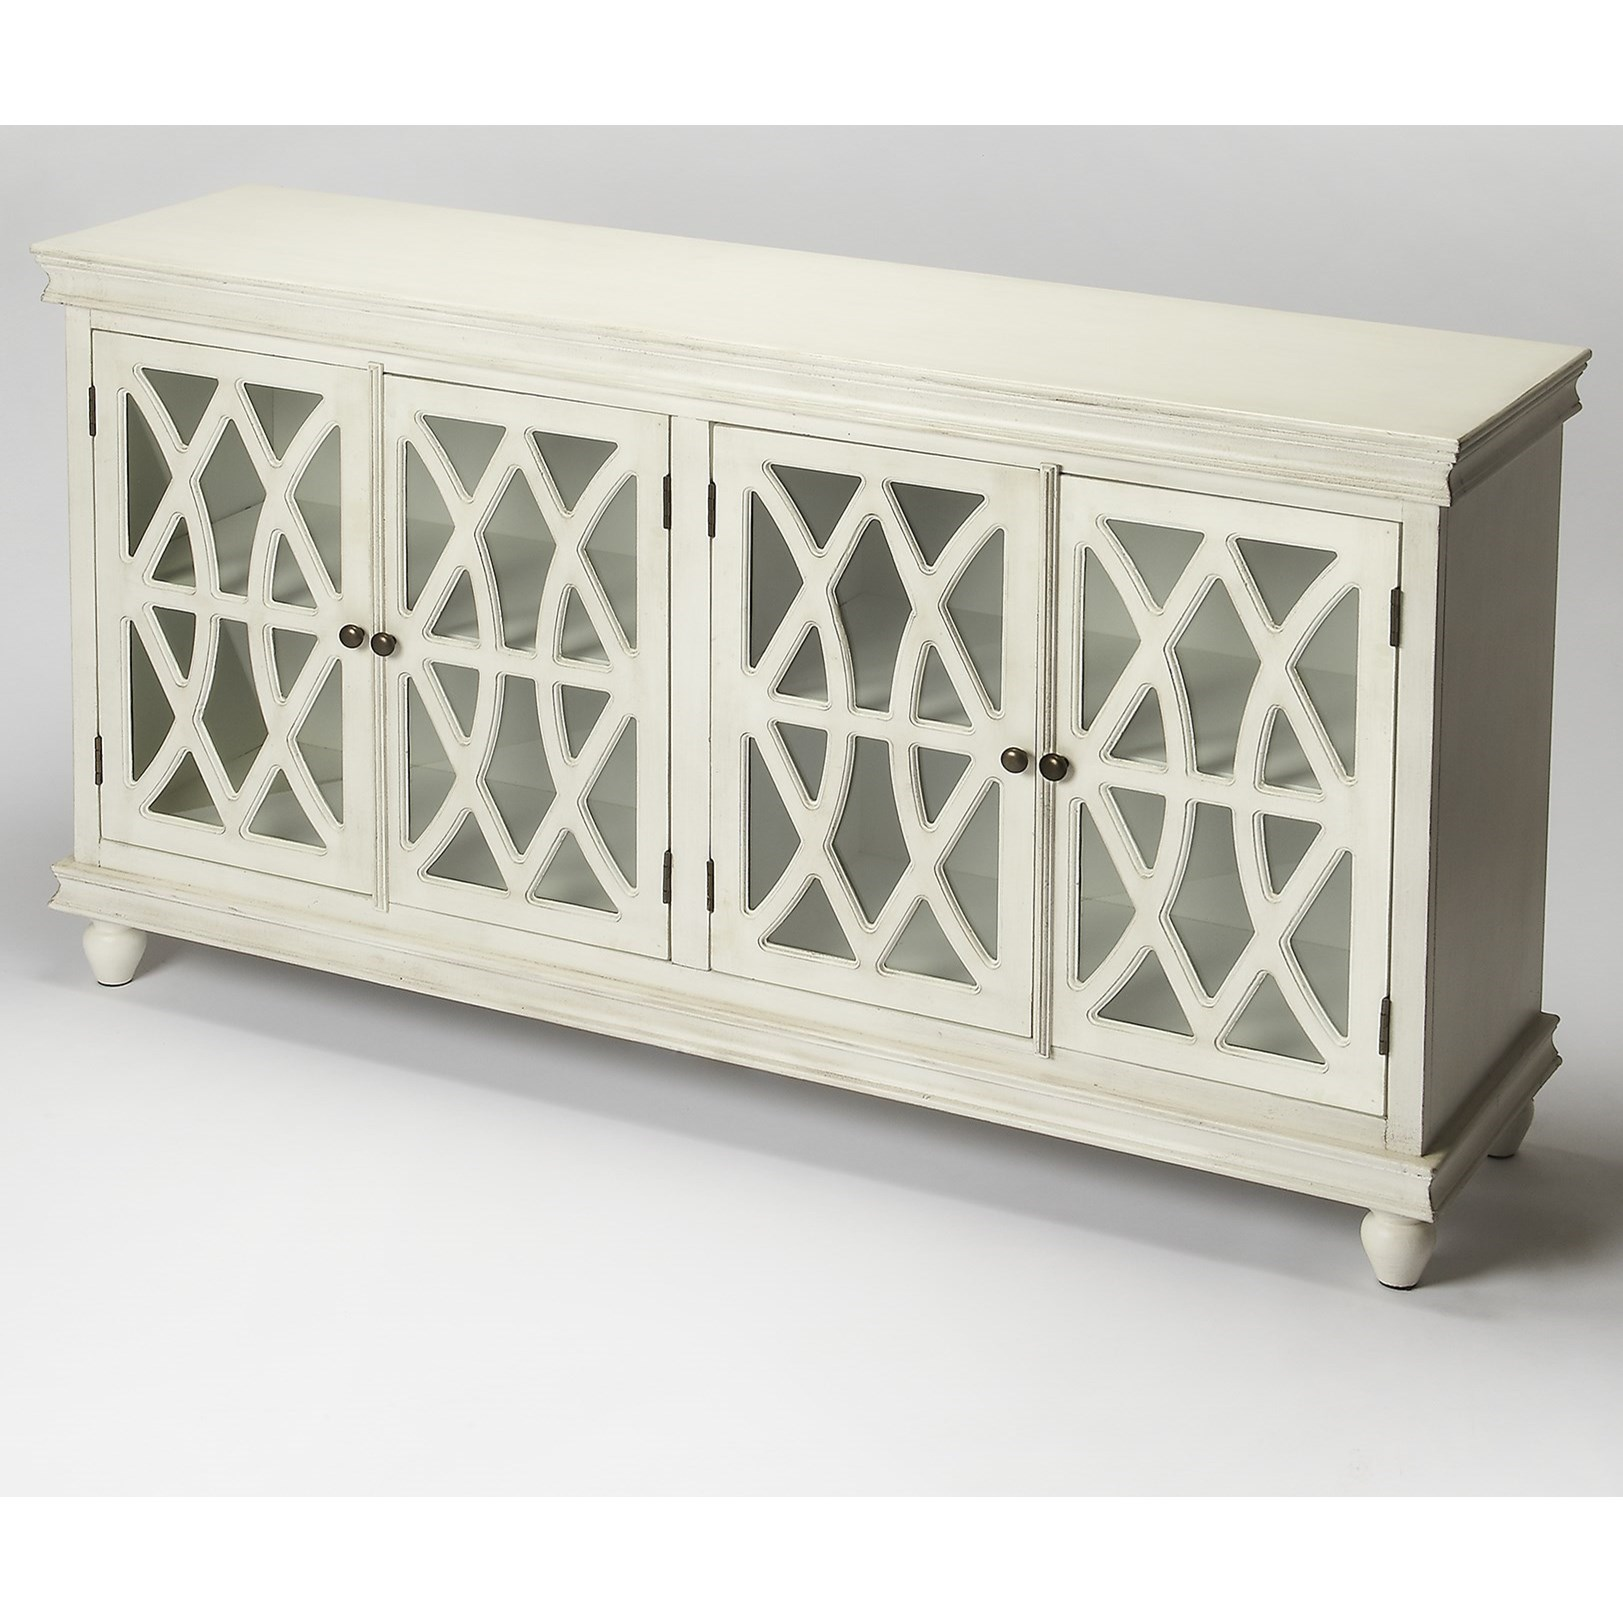 Butler Specialty Company Masterpiece Sideboard - Item Number: 9300288